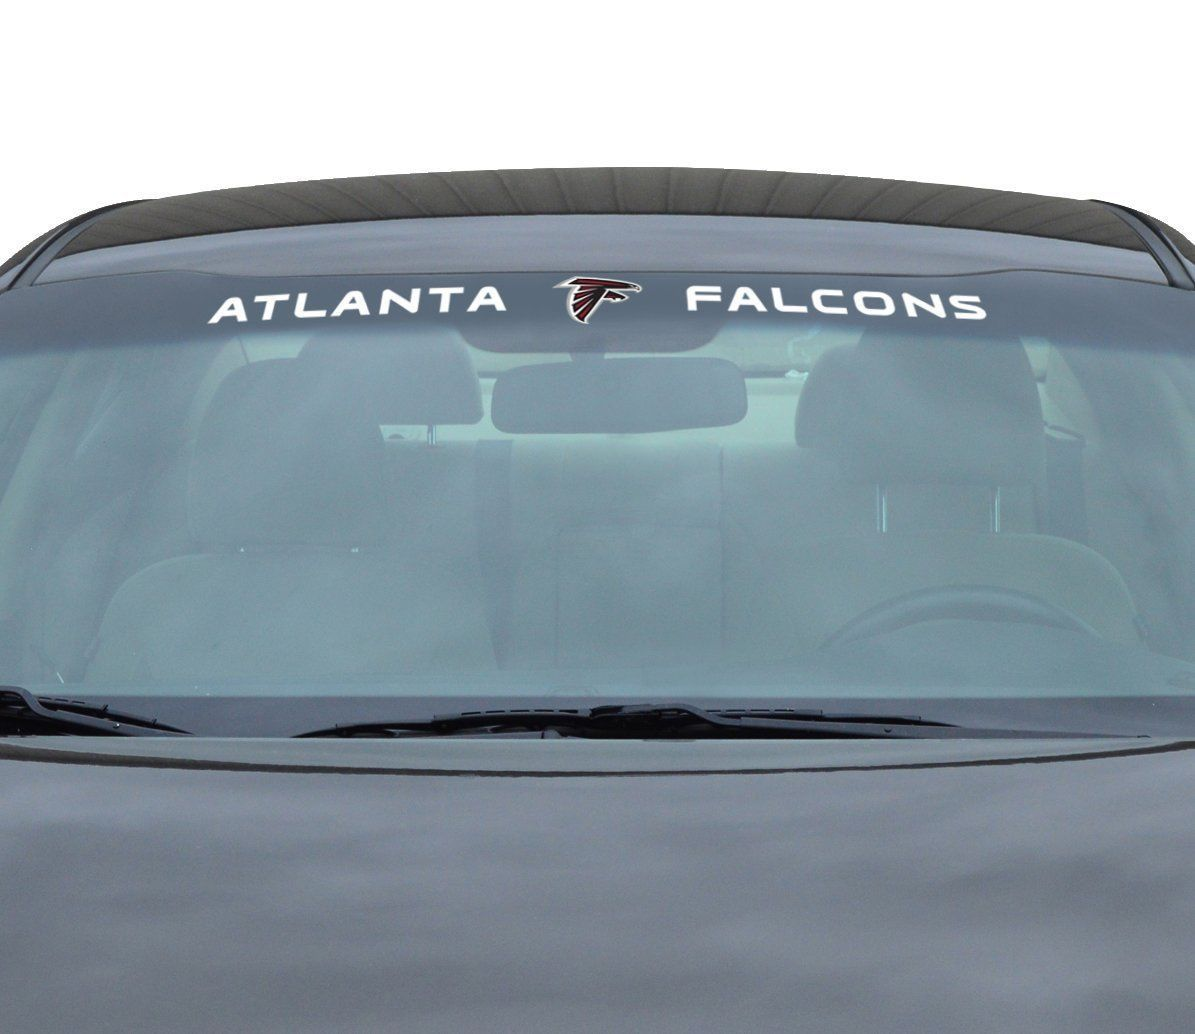 "ATLANTA FALCONS 35"" X 4"" WINDSHIELD REAR WINDOW DECAL CAR TRUCK NFL FOOTBALL"